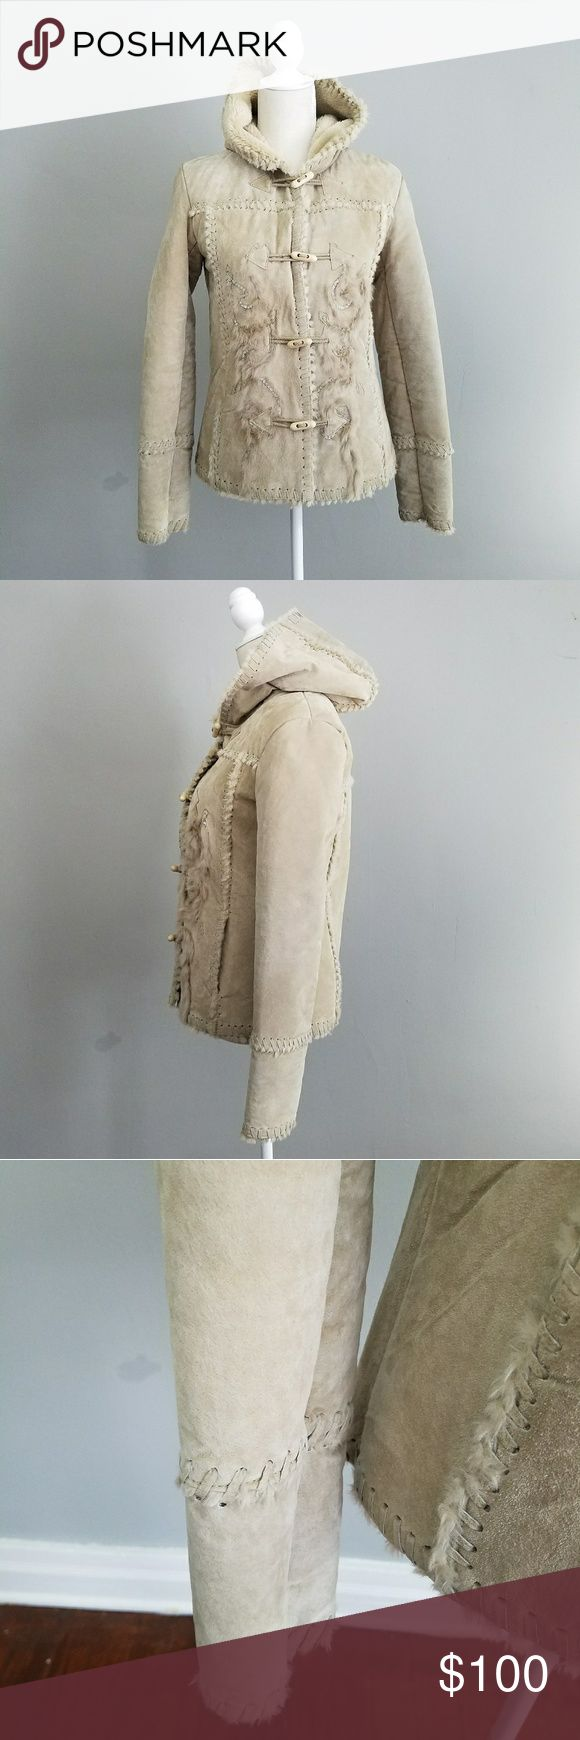 Naf Naf | rare pigs leather shearling coat French designer is hard to get in the US. Excellent condition, small blemish on lower back as seen. Pigs skin and faux fur. Stitched together.  Cute toggles with embroidered detail. extra button included. French medium is closer to a small. Jackets & Coats